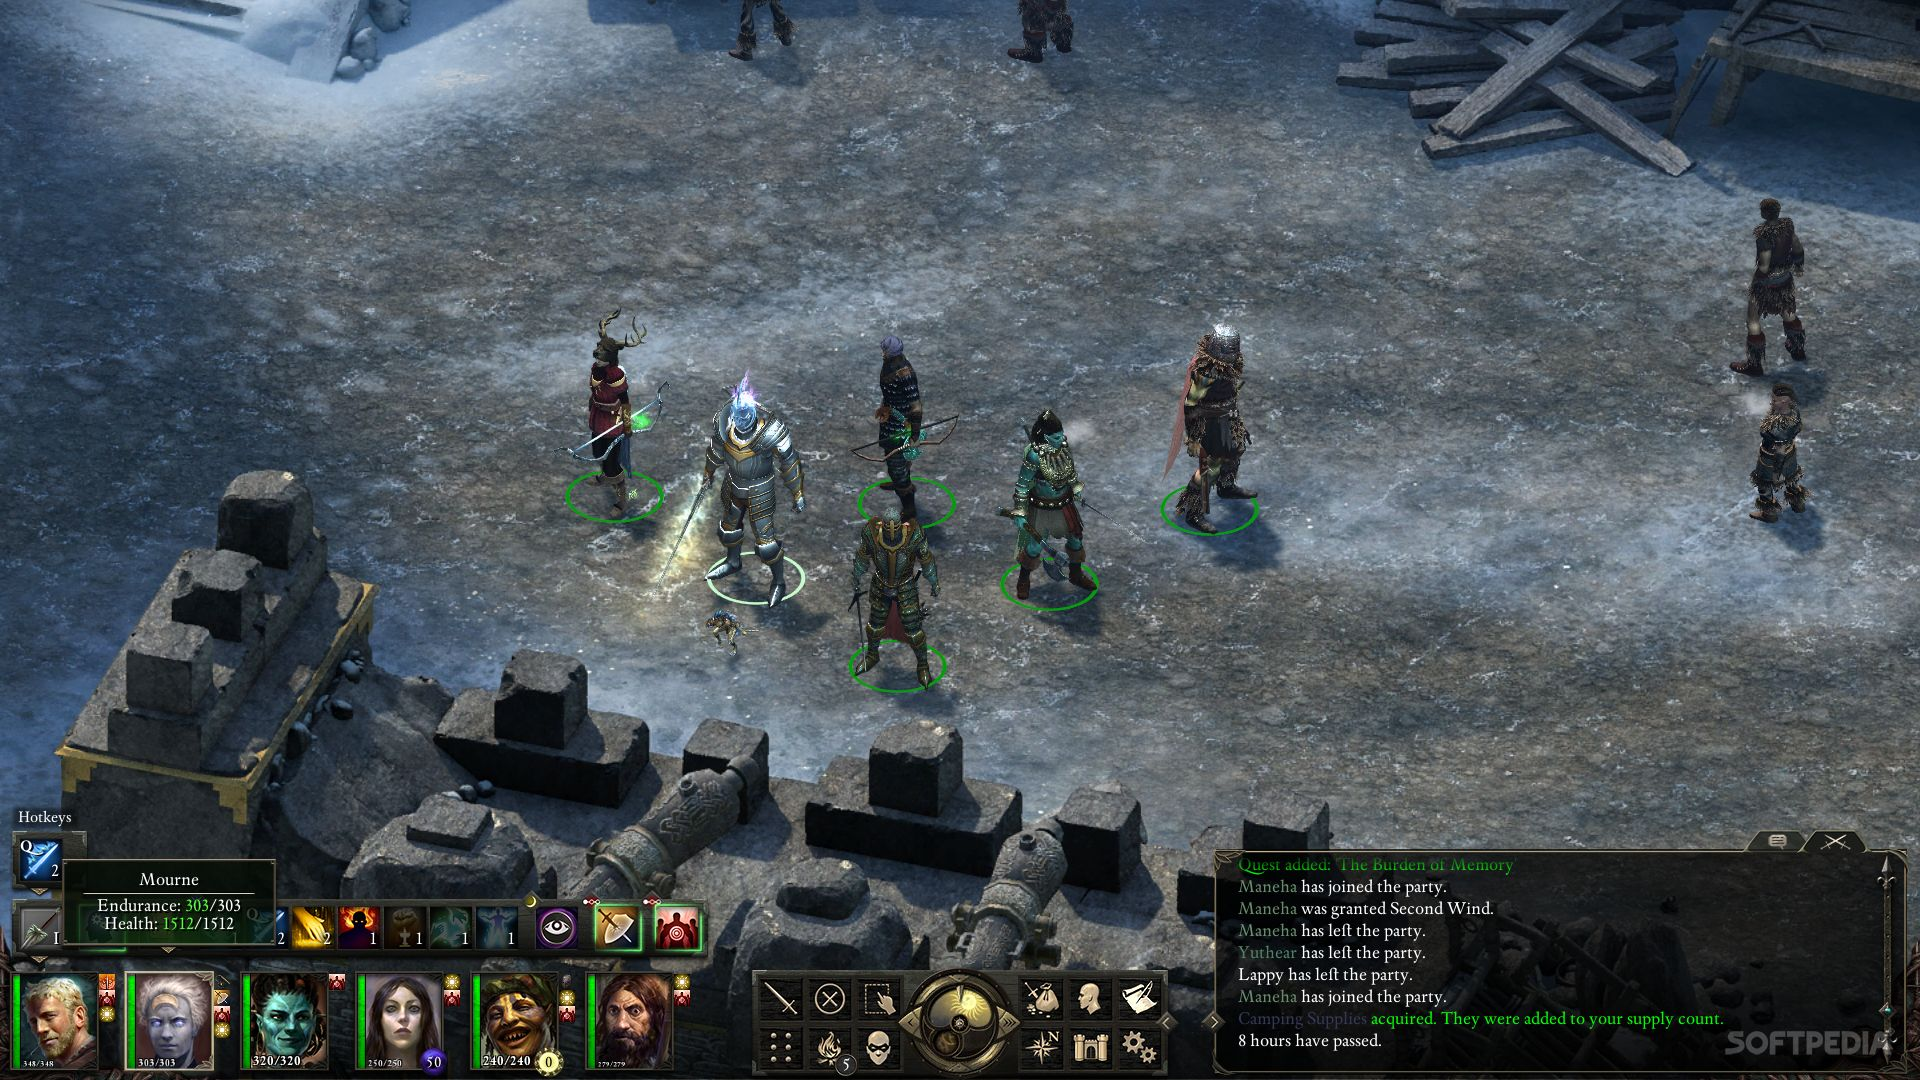 Pillars of Eternity: The White March - Part 2 Review (PC)